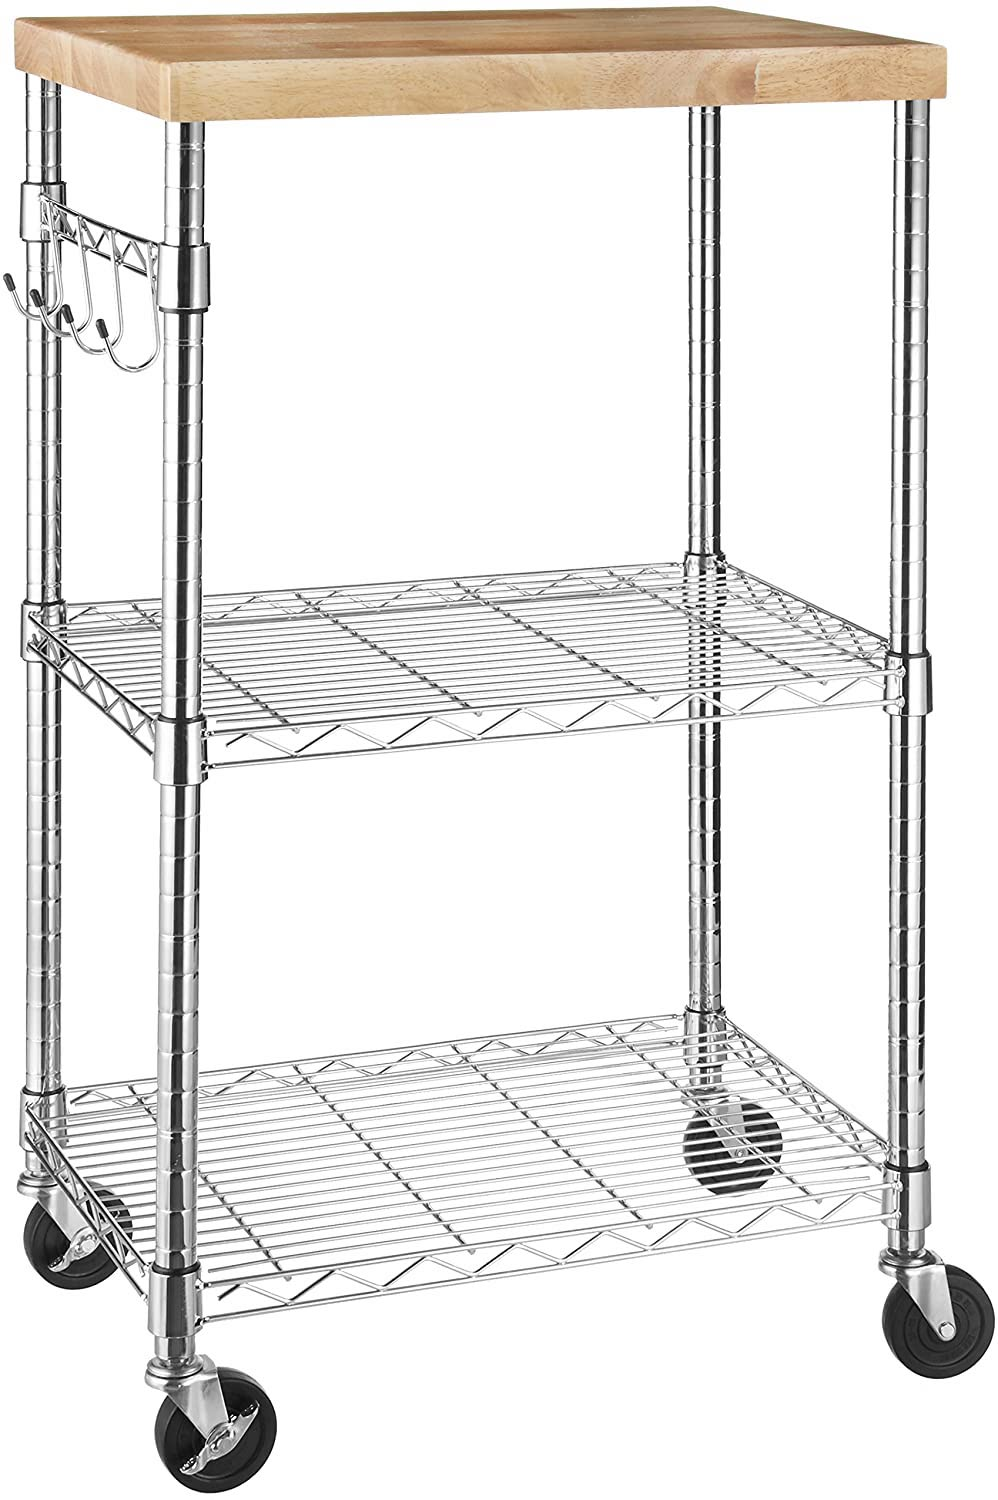 AmazonBasics Kitchen Roling Cart